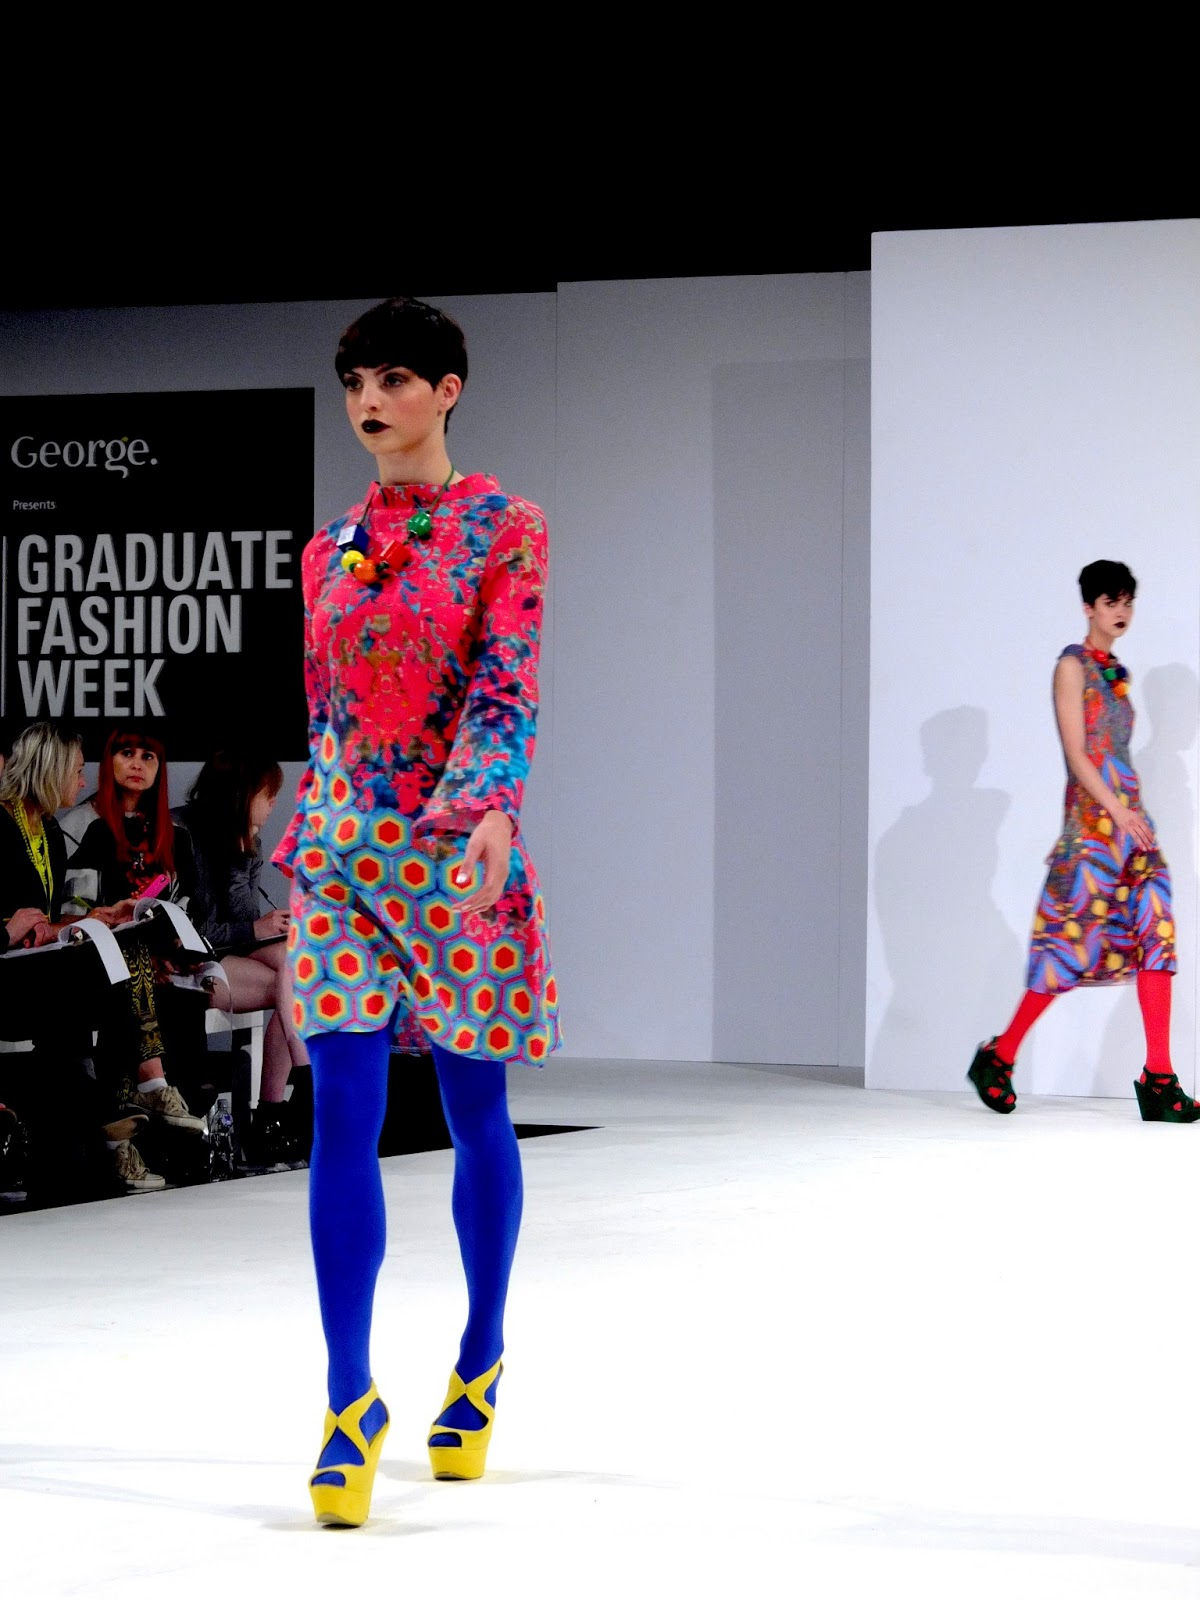 Graduate Fashion Week Graduate Fashion Week The View On